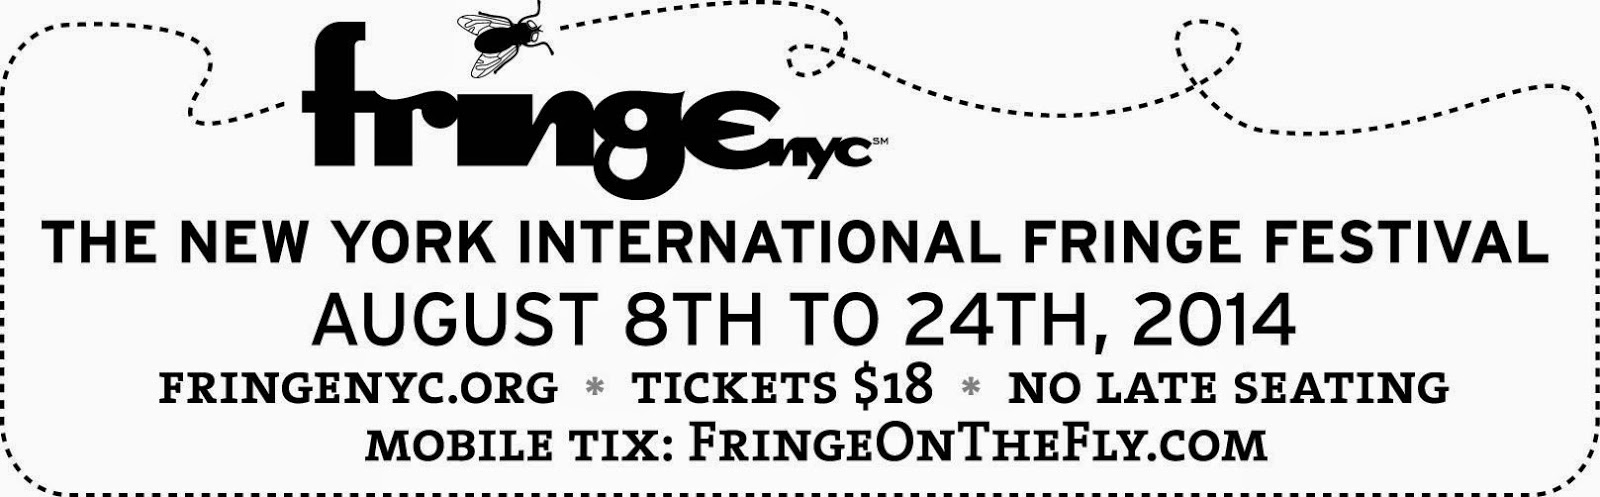 http://fringenyc.org/basic_page.php?ltr=A#TheAdv